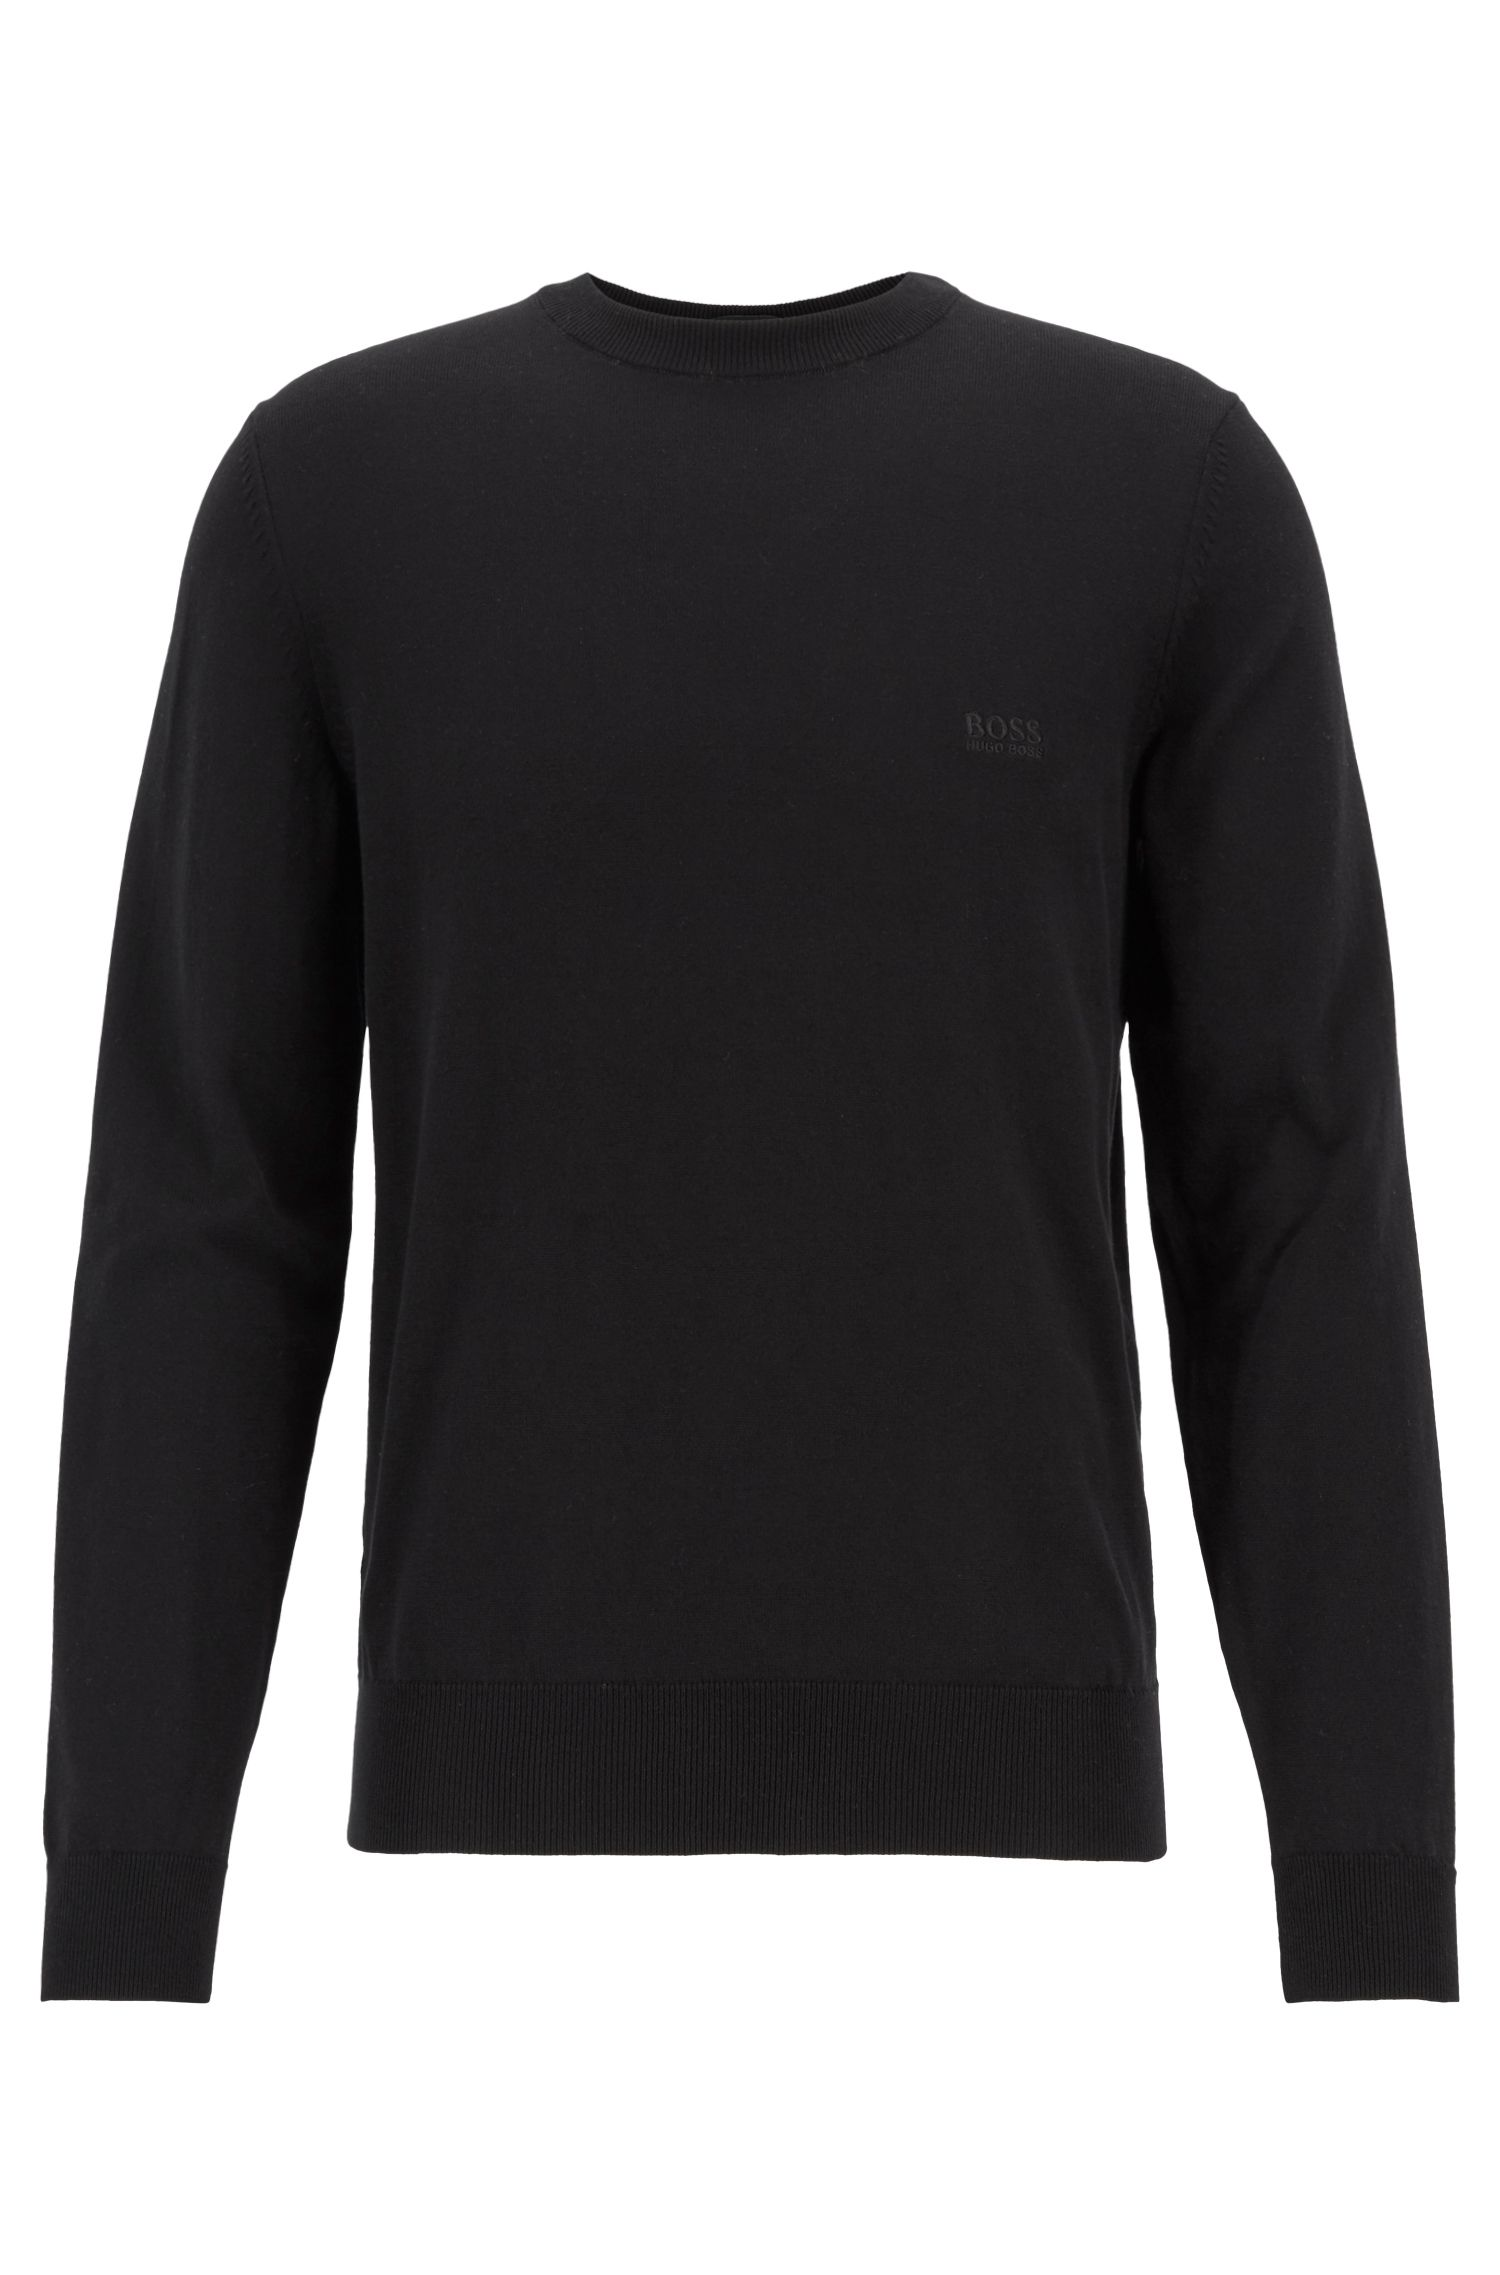 Crew-neck sweater in single-jersey cotton, Black